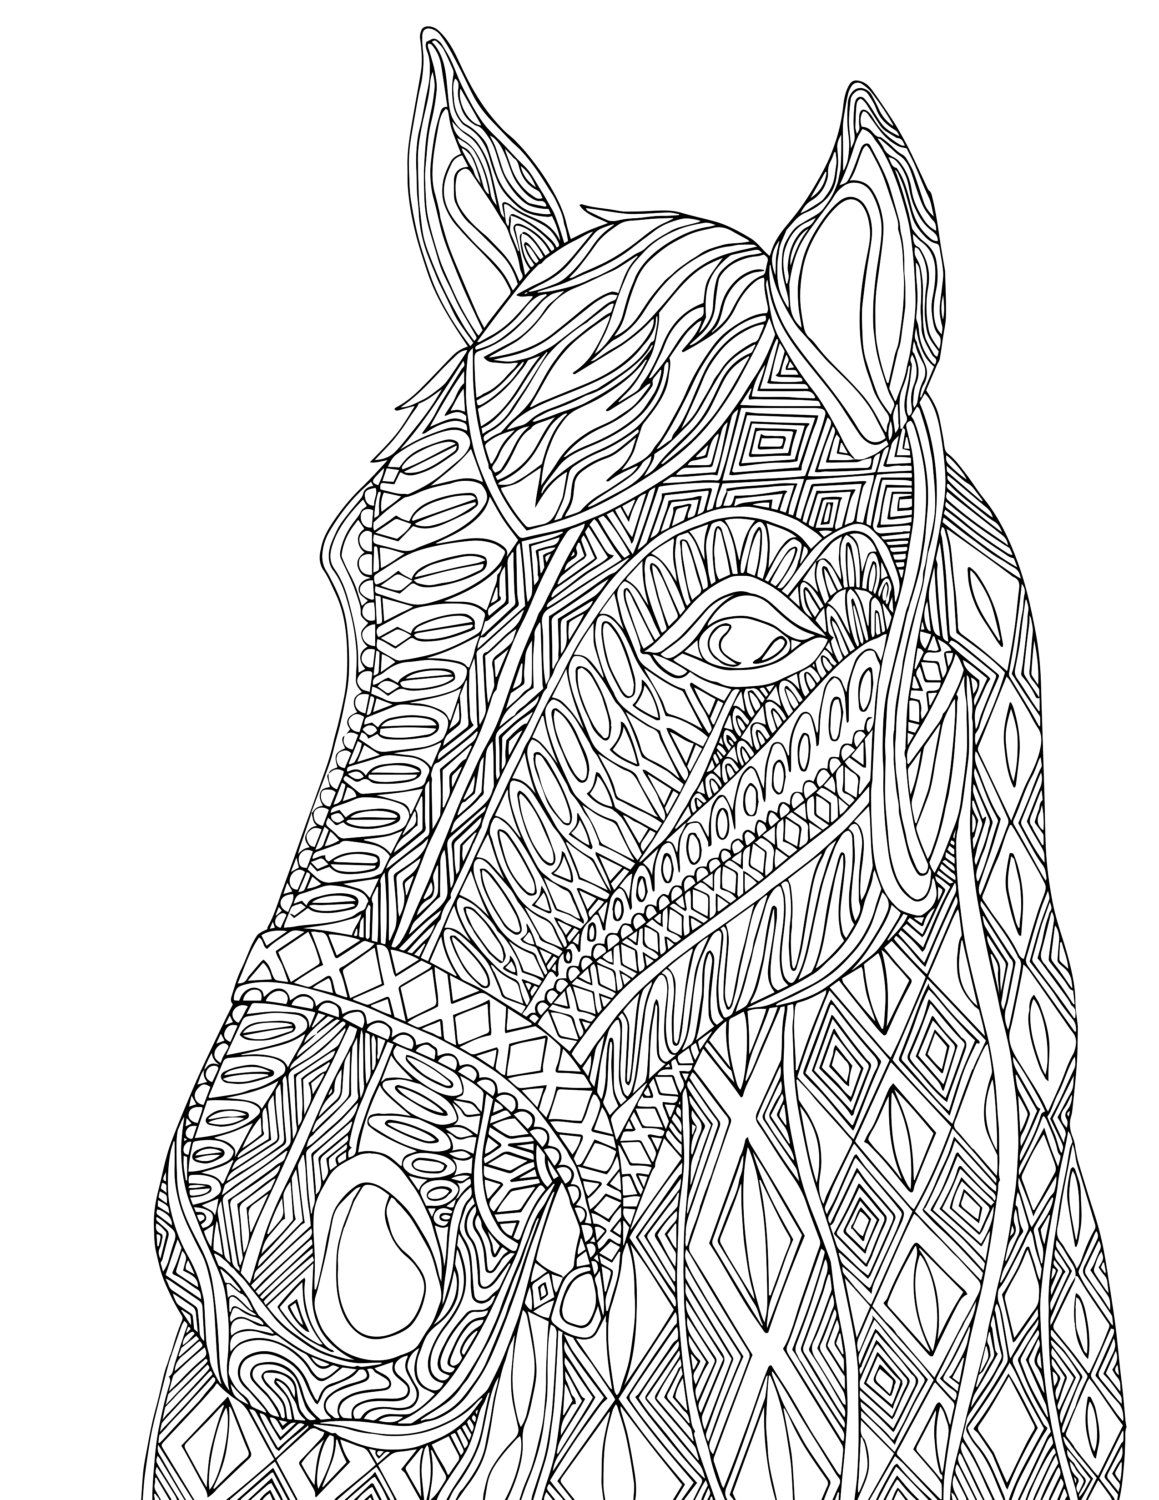 Horse Pdf Zentangle Coloring Page Therapy Coloring Etsy Horse Coloring Pages Animal Coloring Pages Horse Coloring